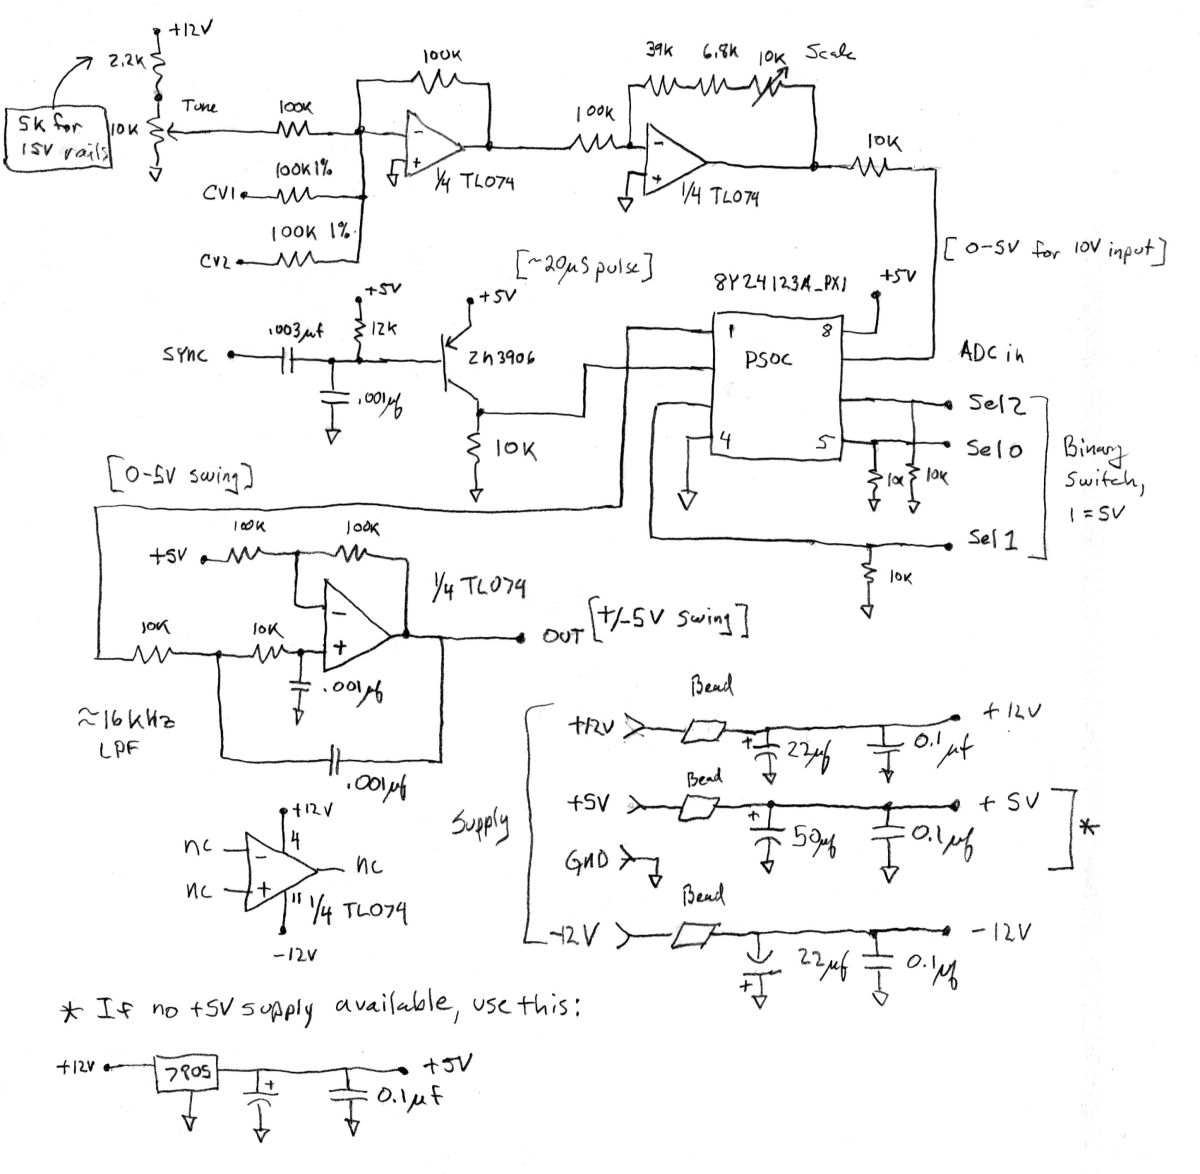 dvco_schem digital vco hks sld type 2 wiring diagram at reclaimingppi.co